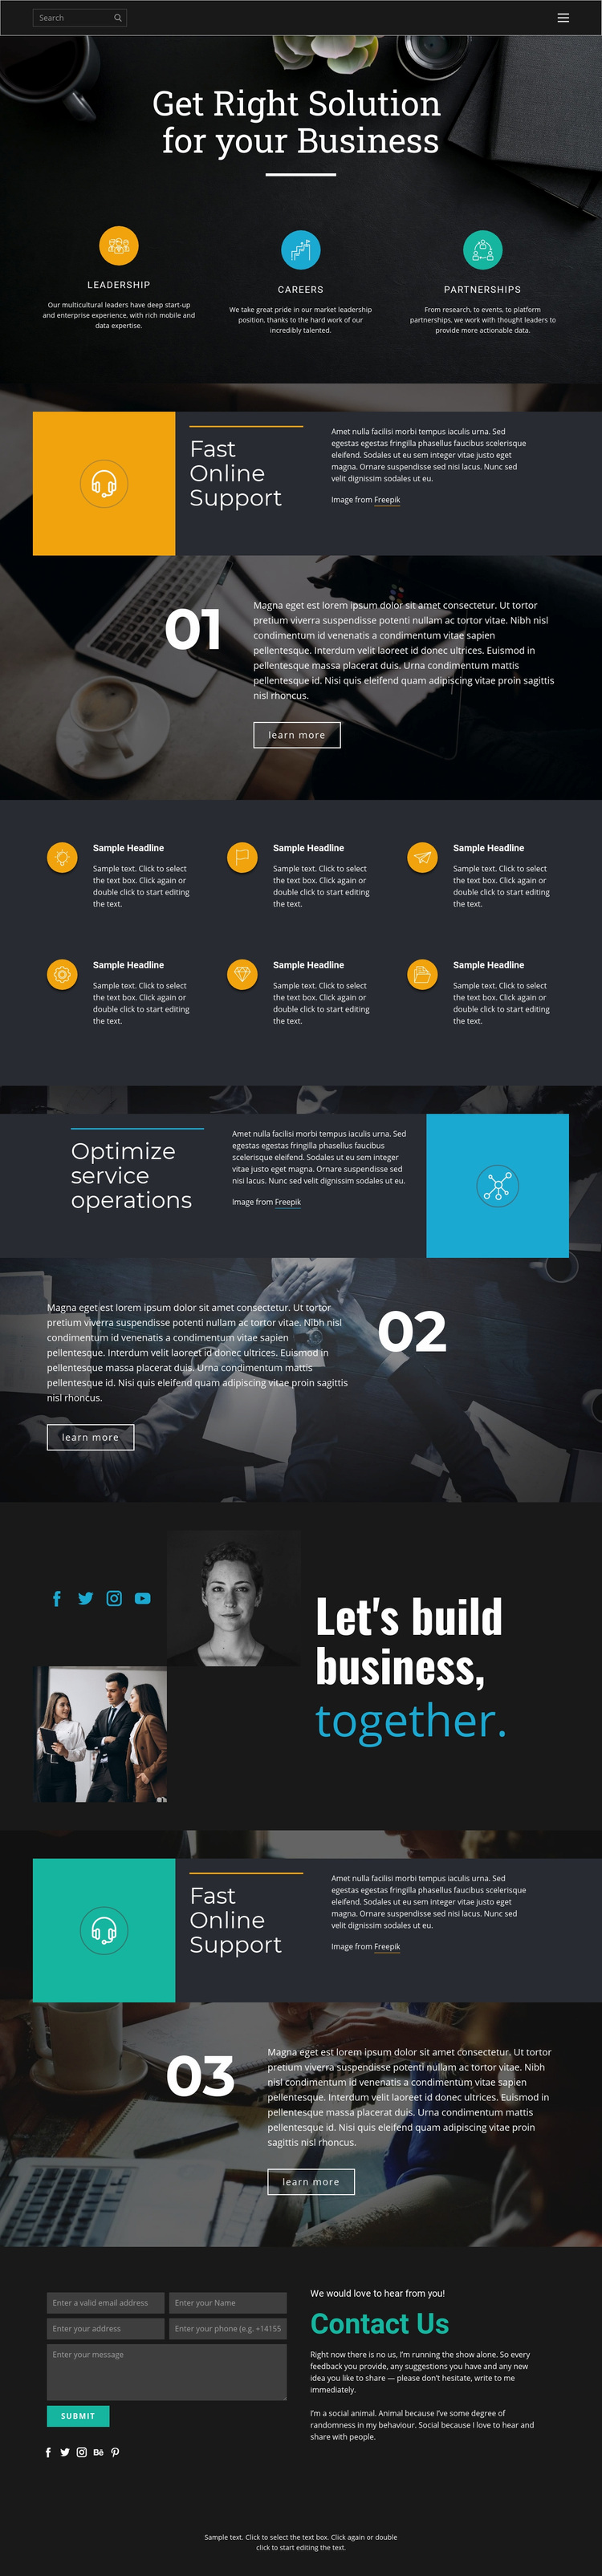 Right solutions for business Web Page Designer